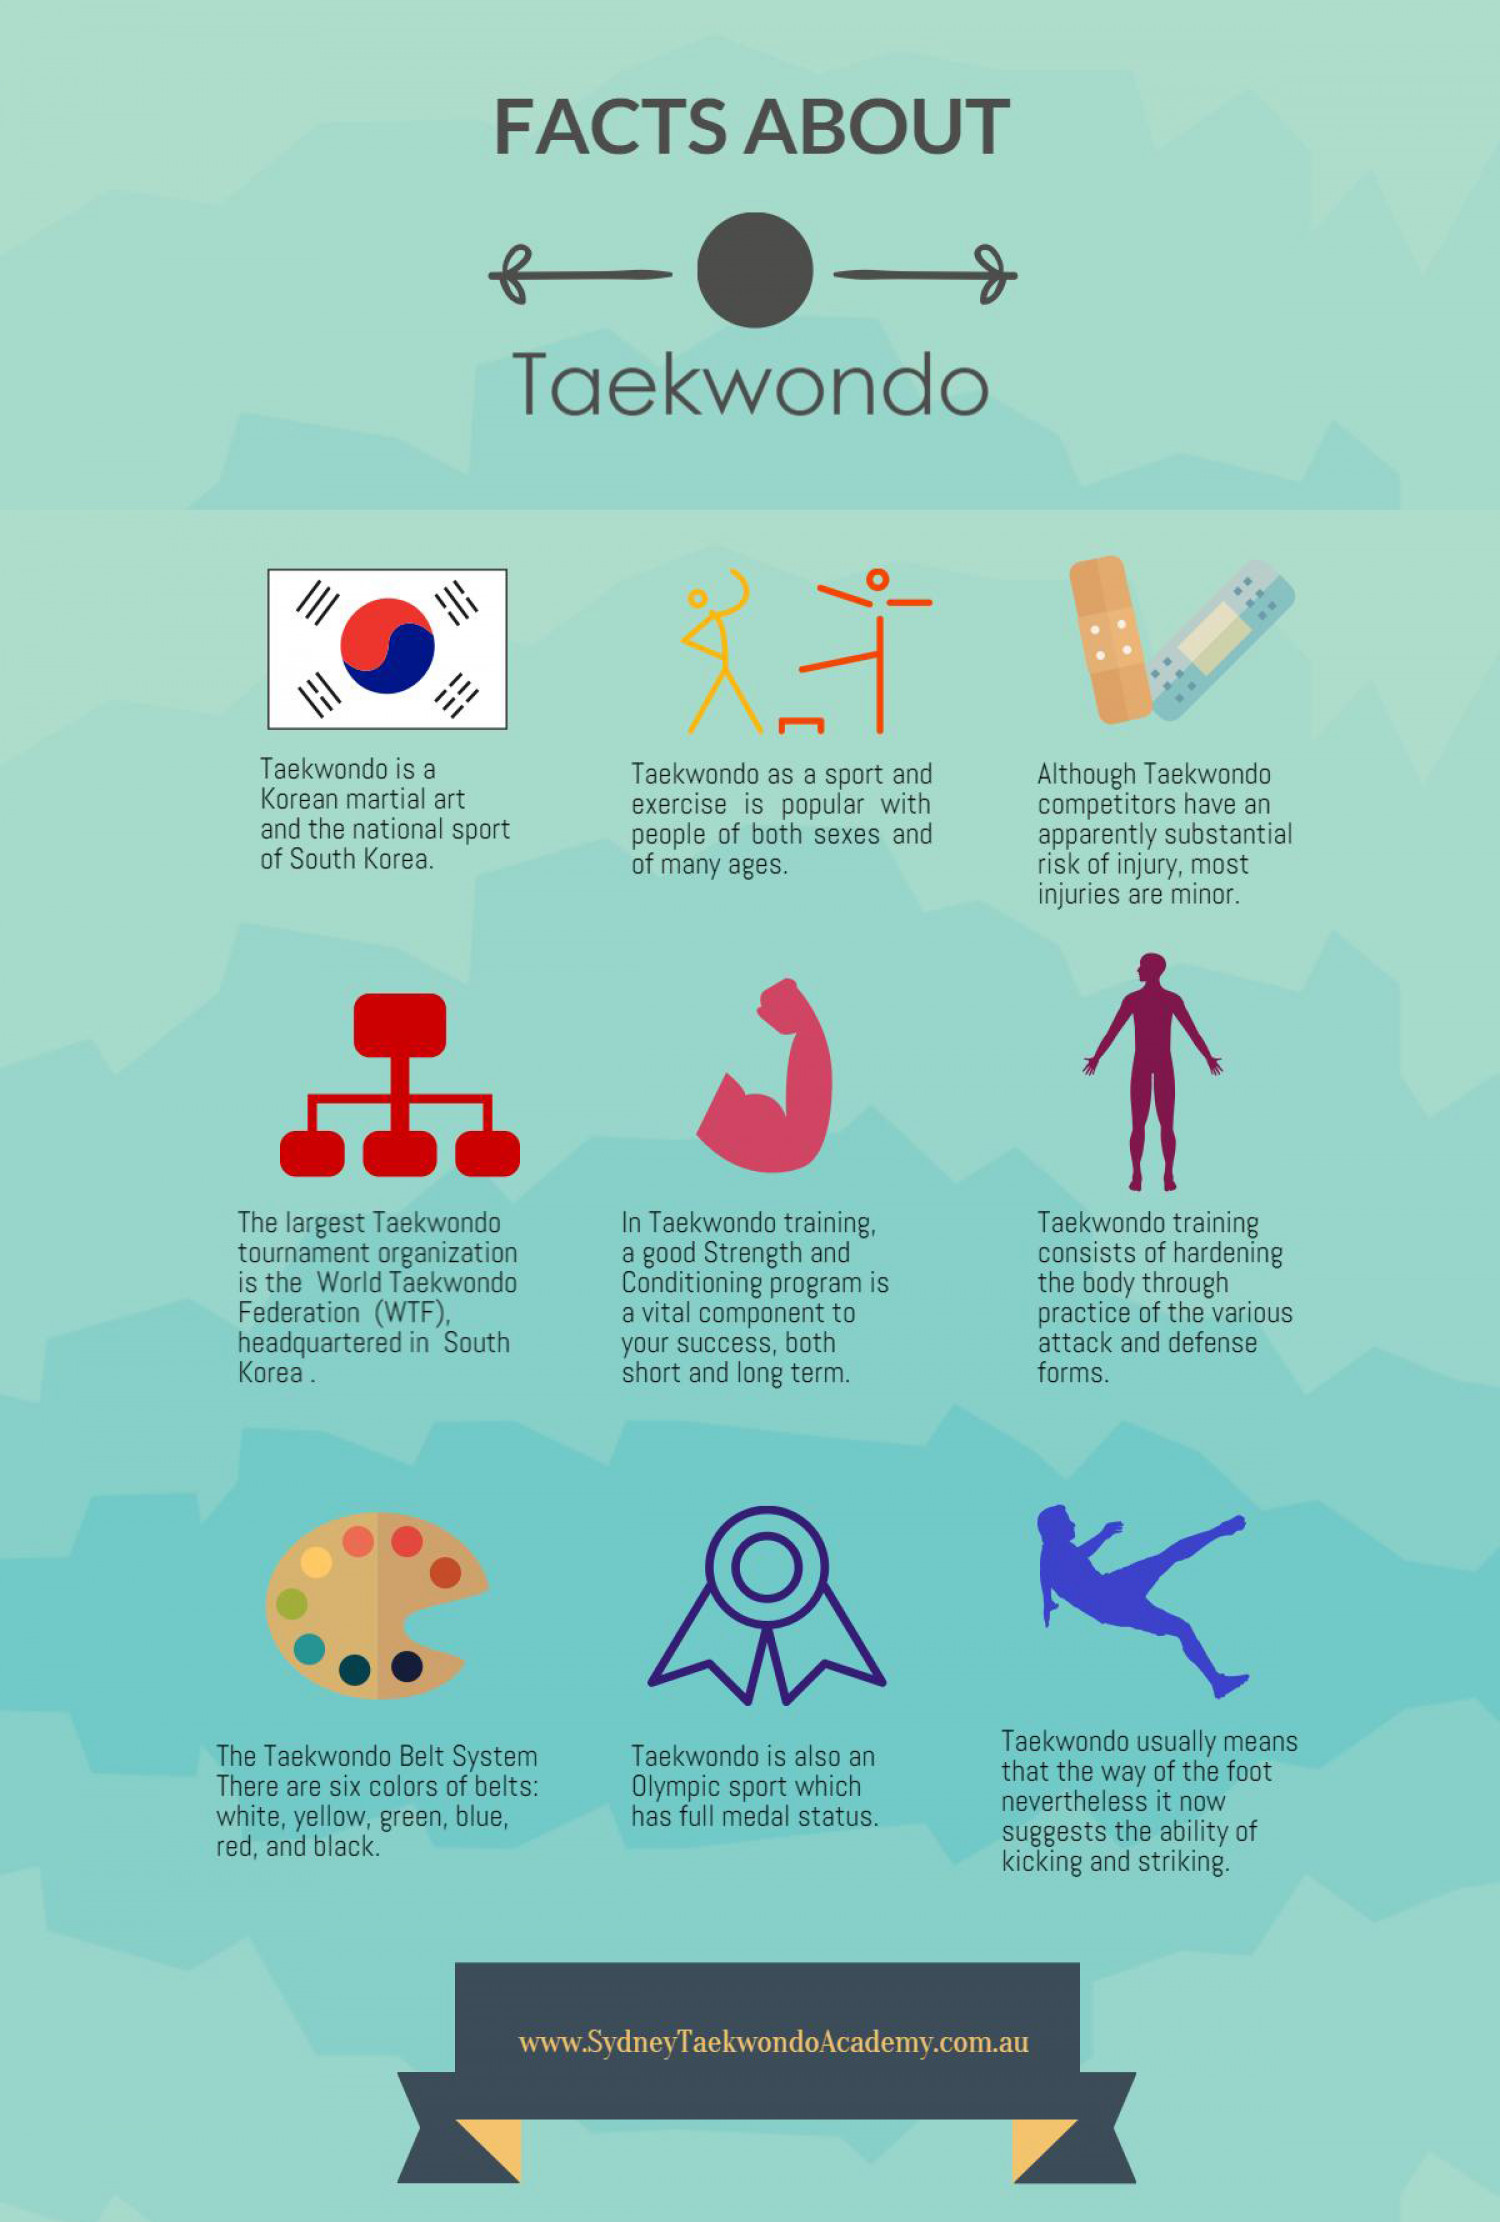 Facts About Taekwondo Infographic